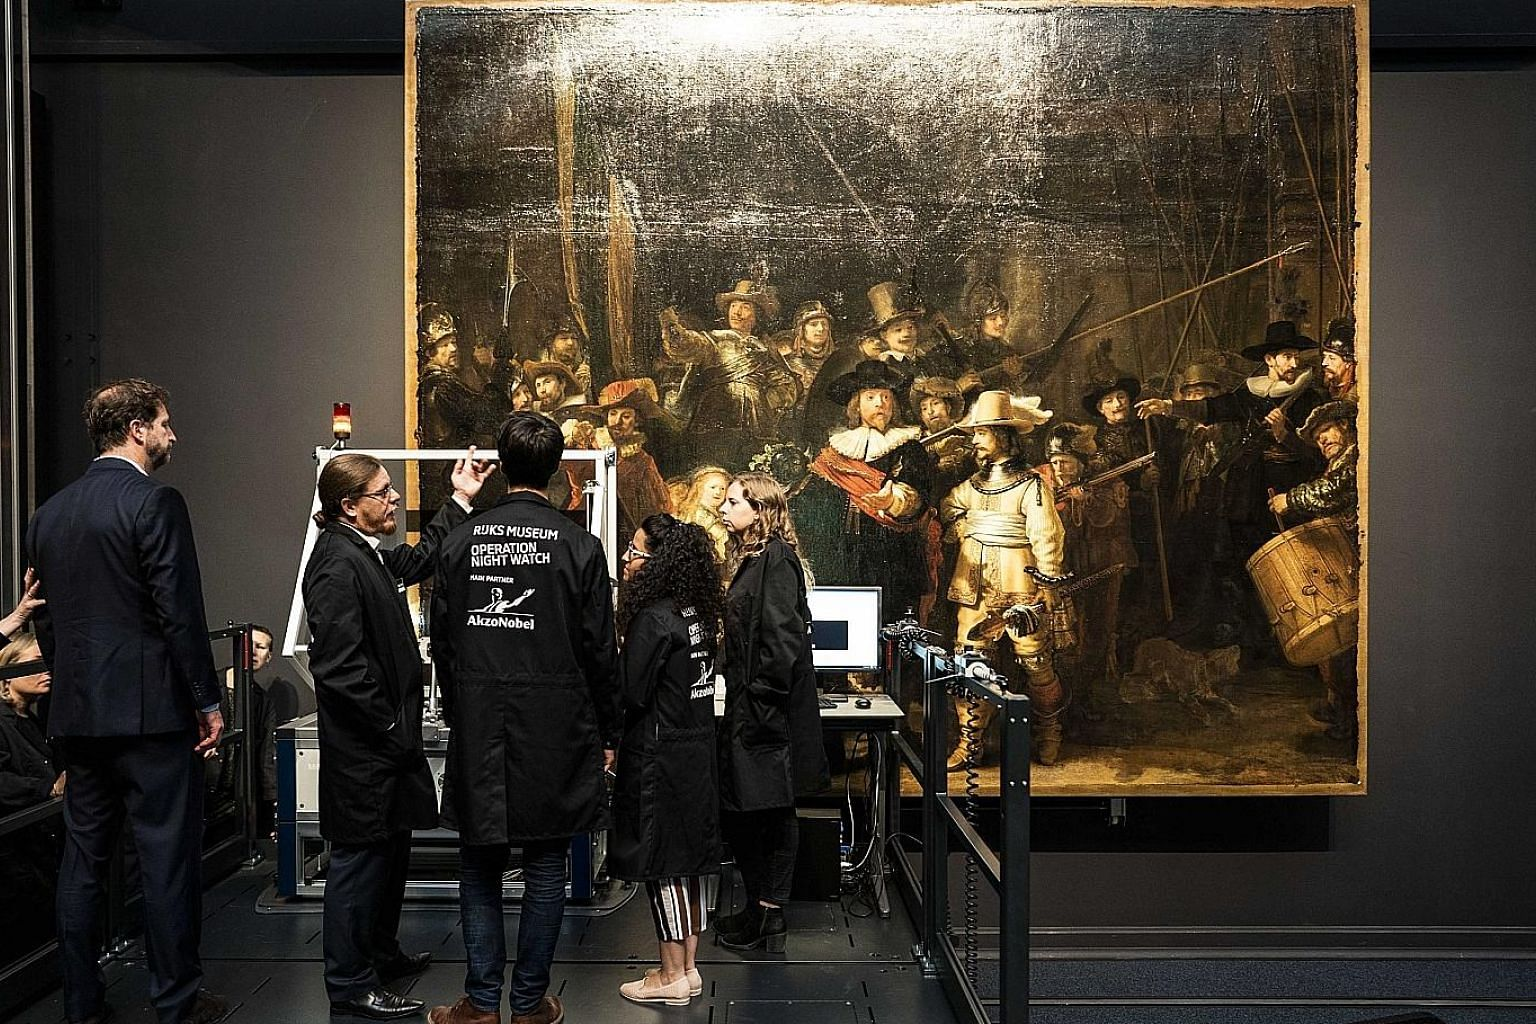 Experts will work on The Night Watch inside a glass case in the Rijksmuseum, Amsterdam.